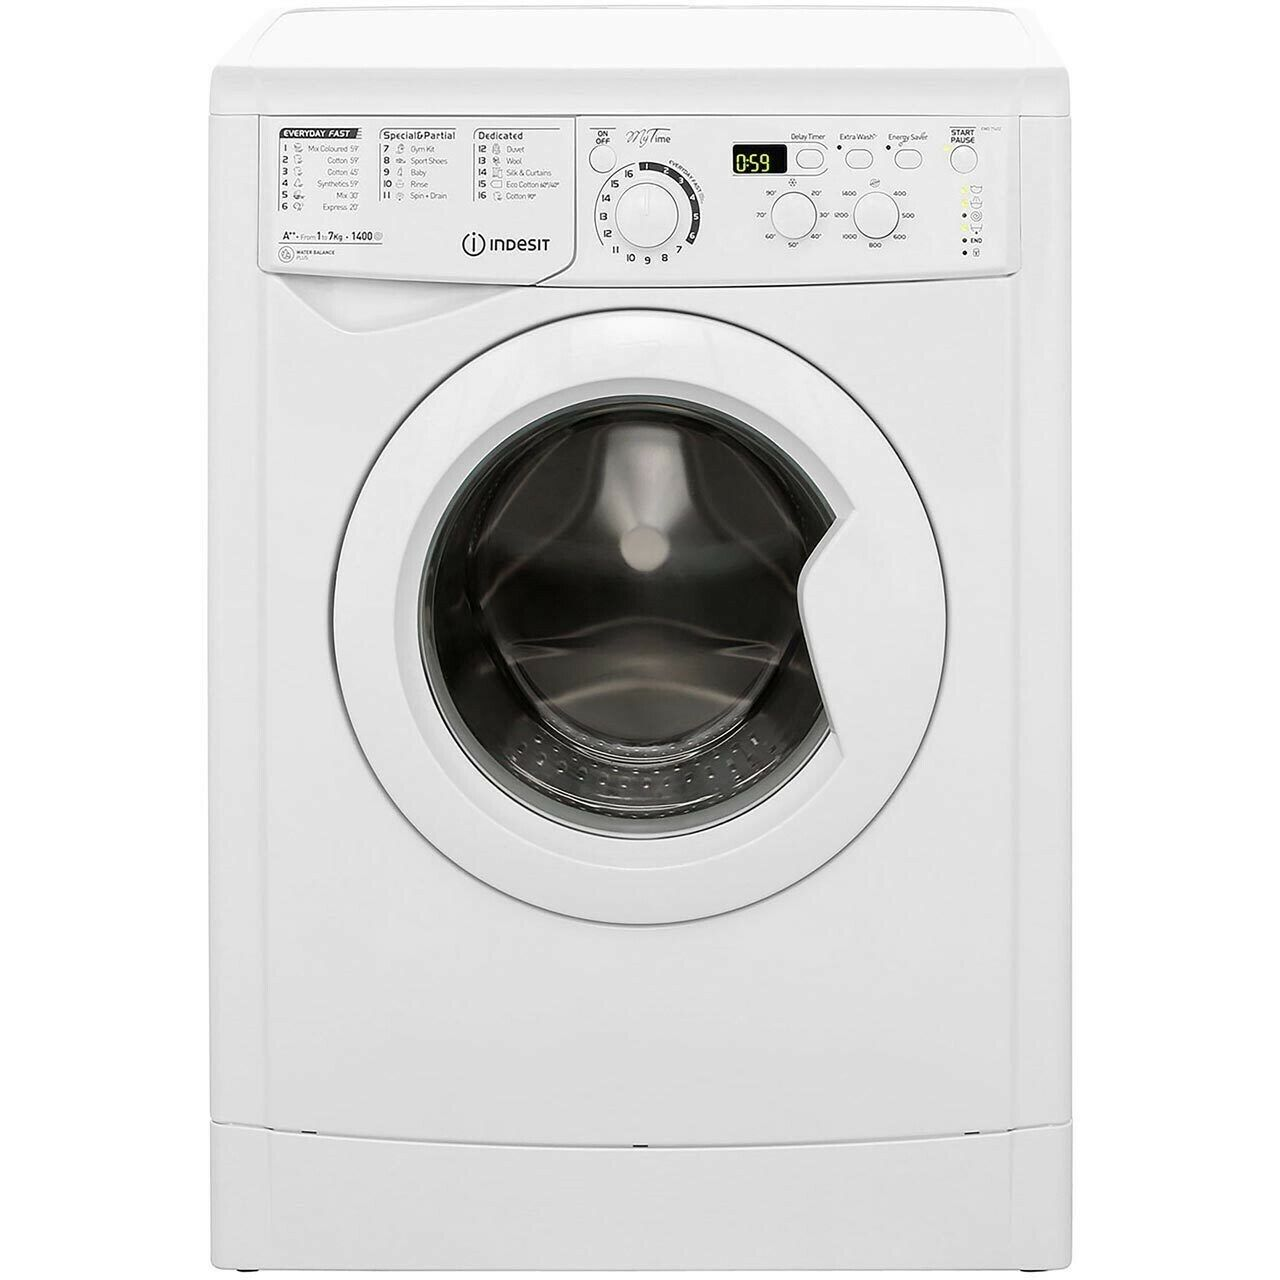 Indesit, Freestanding Washing Machine - A++ Rated - White (EWD71452W).